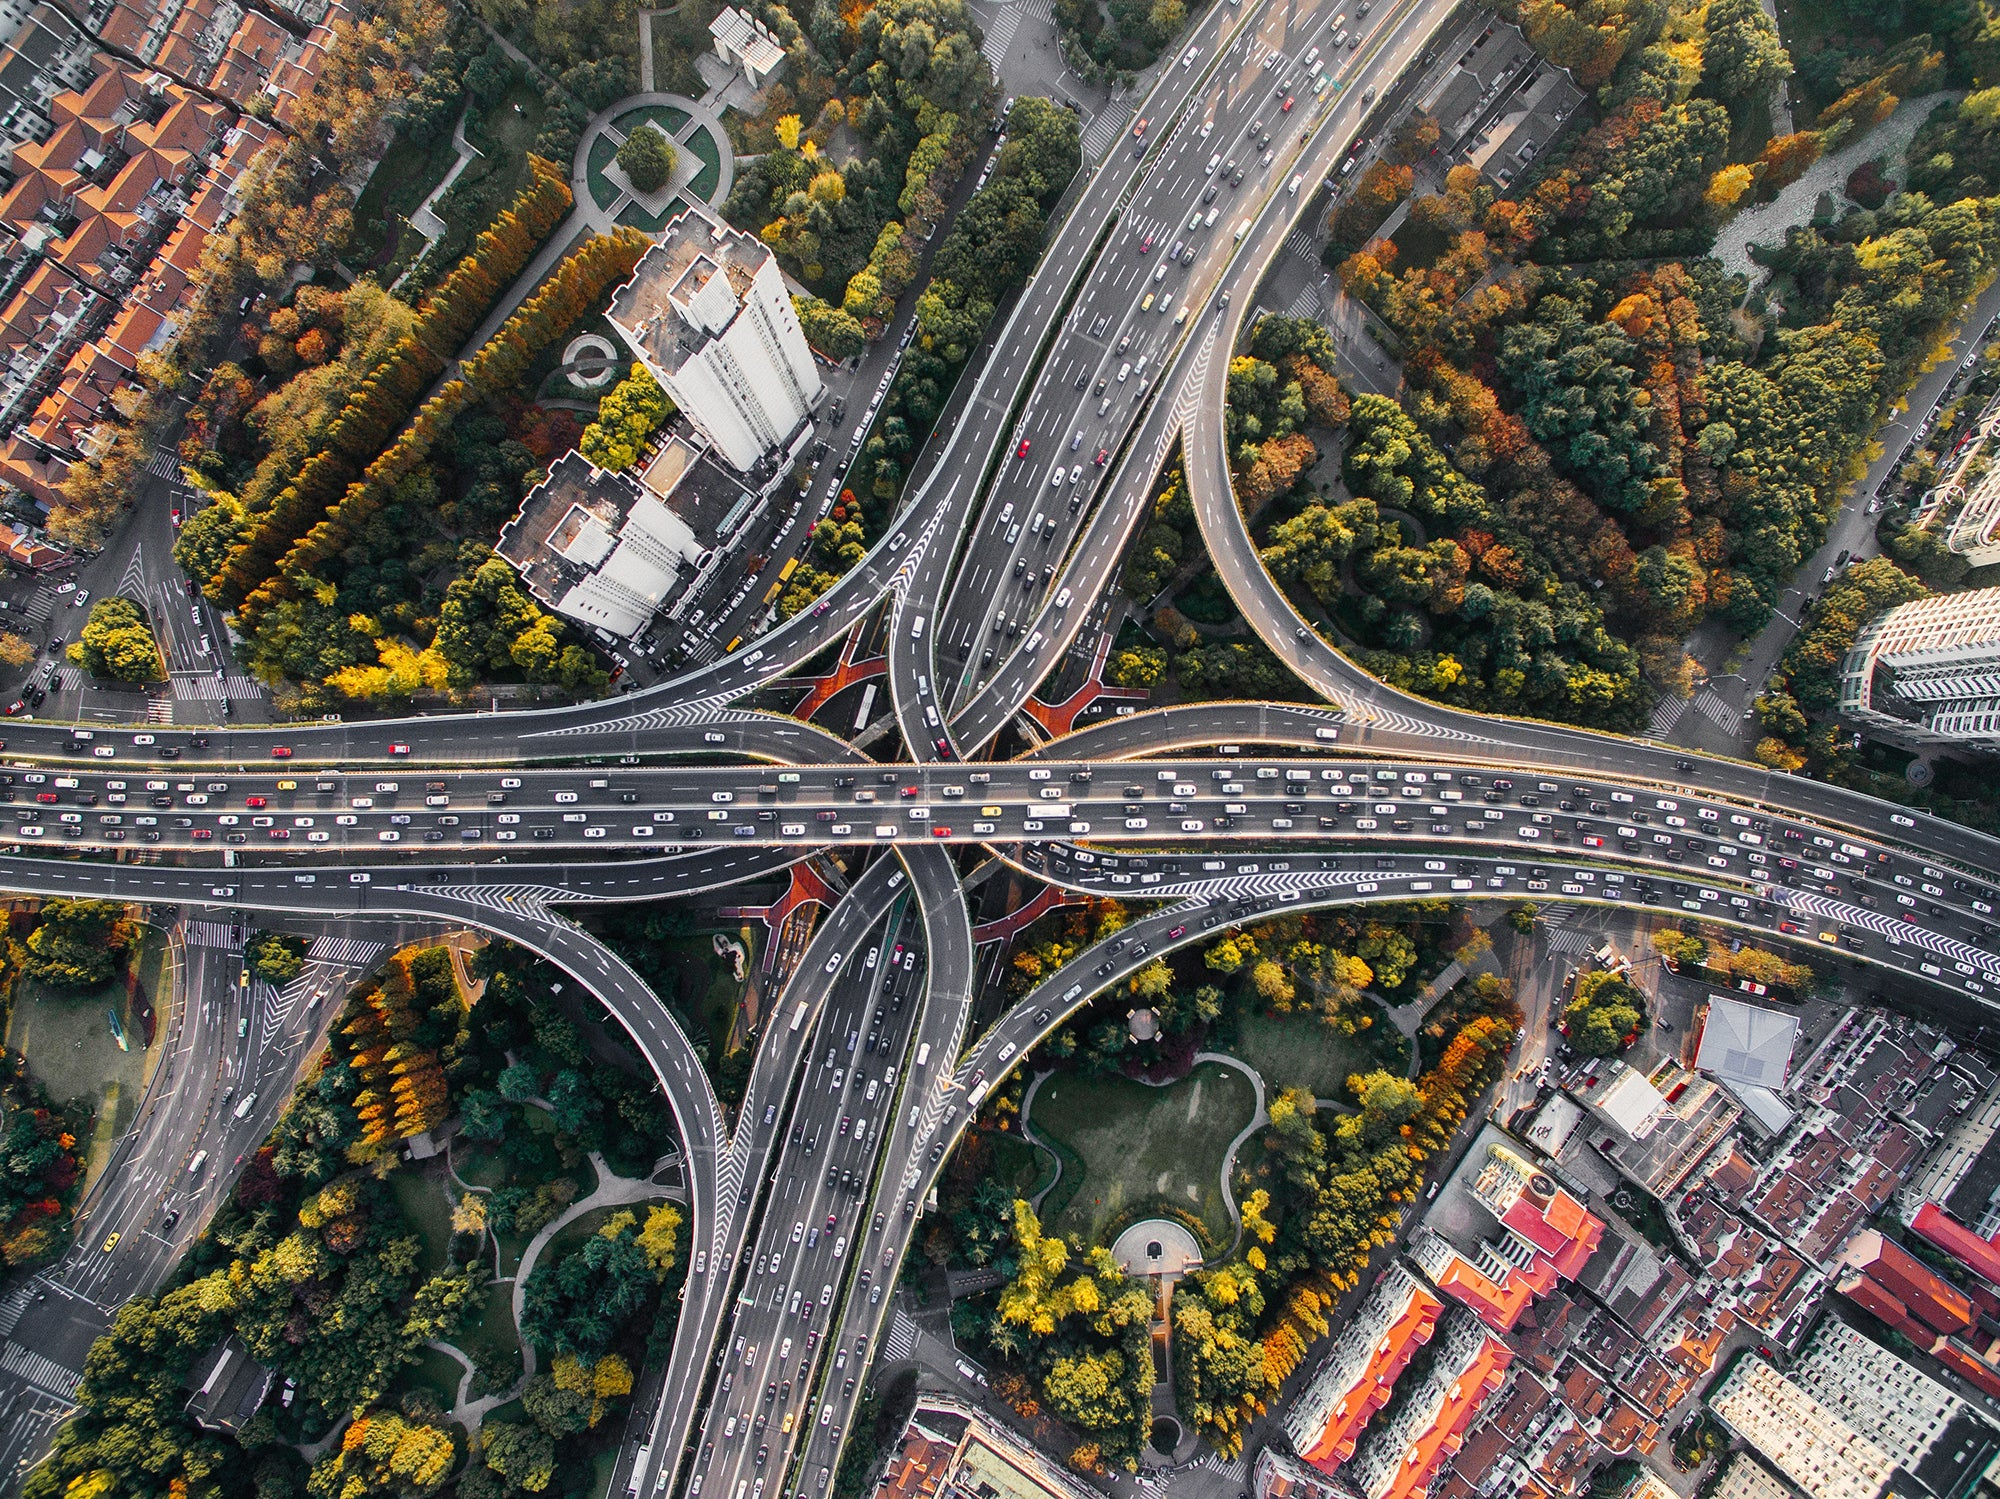 birds-eye view of highway with cars, buildings, and trees